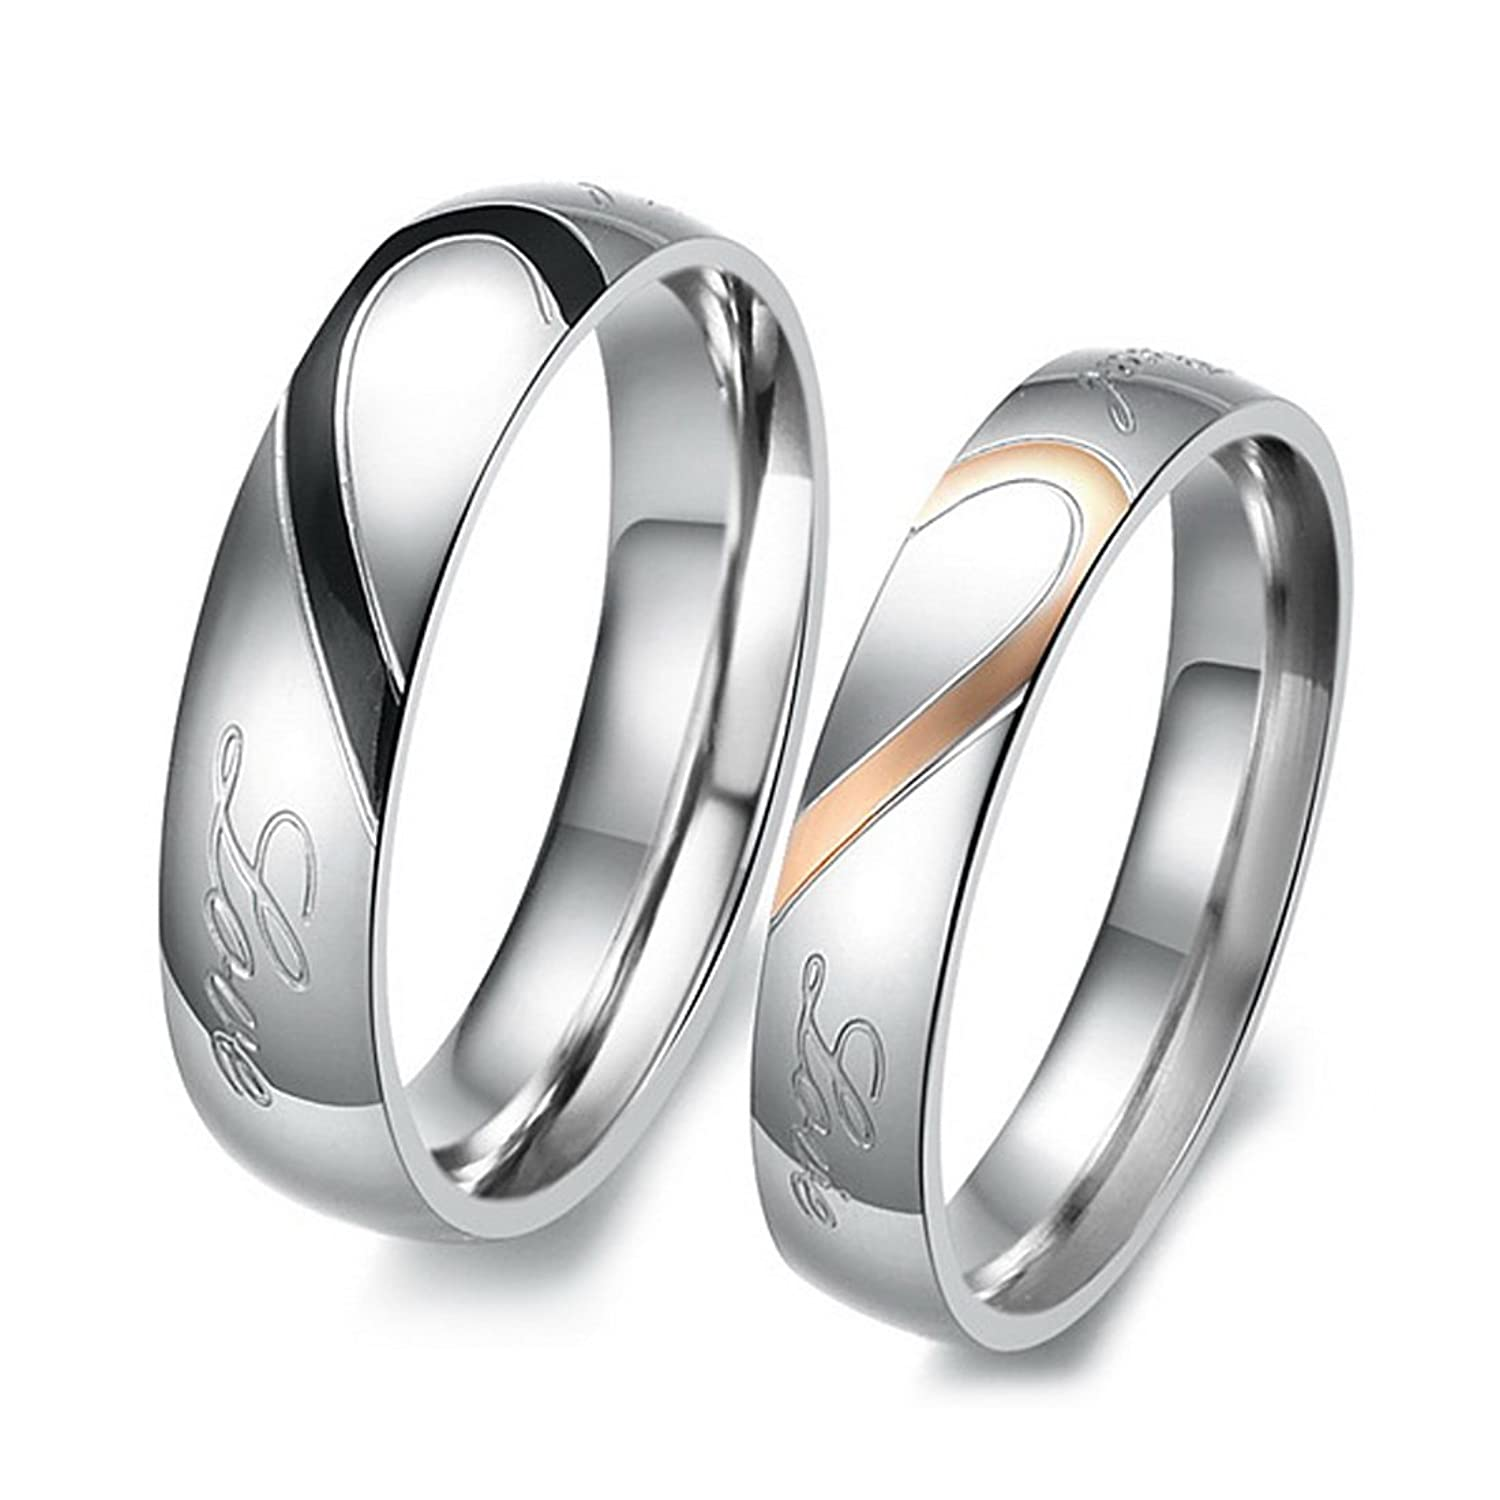 for his love rings wedding com and wonderful awesome i engraved you with hers bands matching titanium matvuk